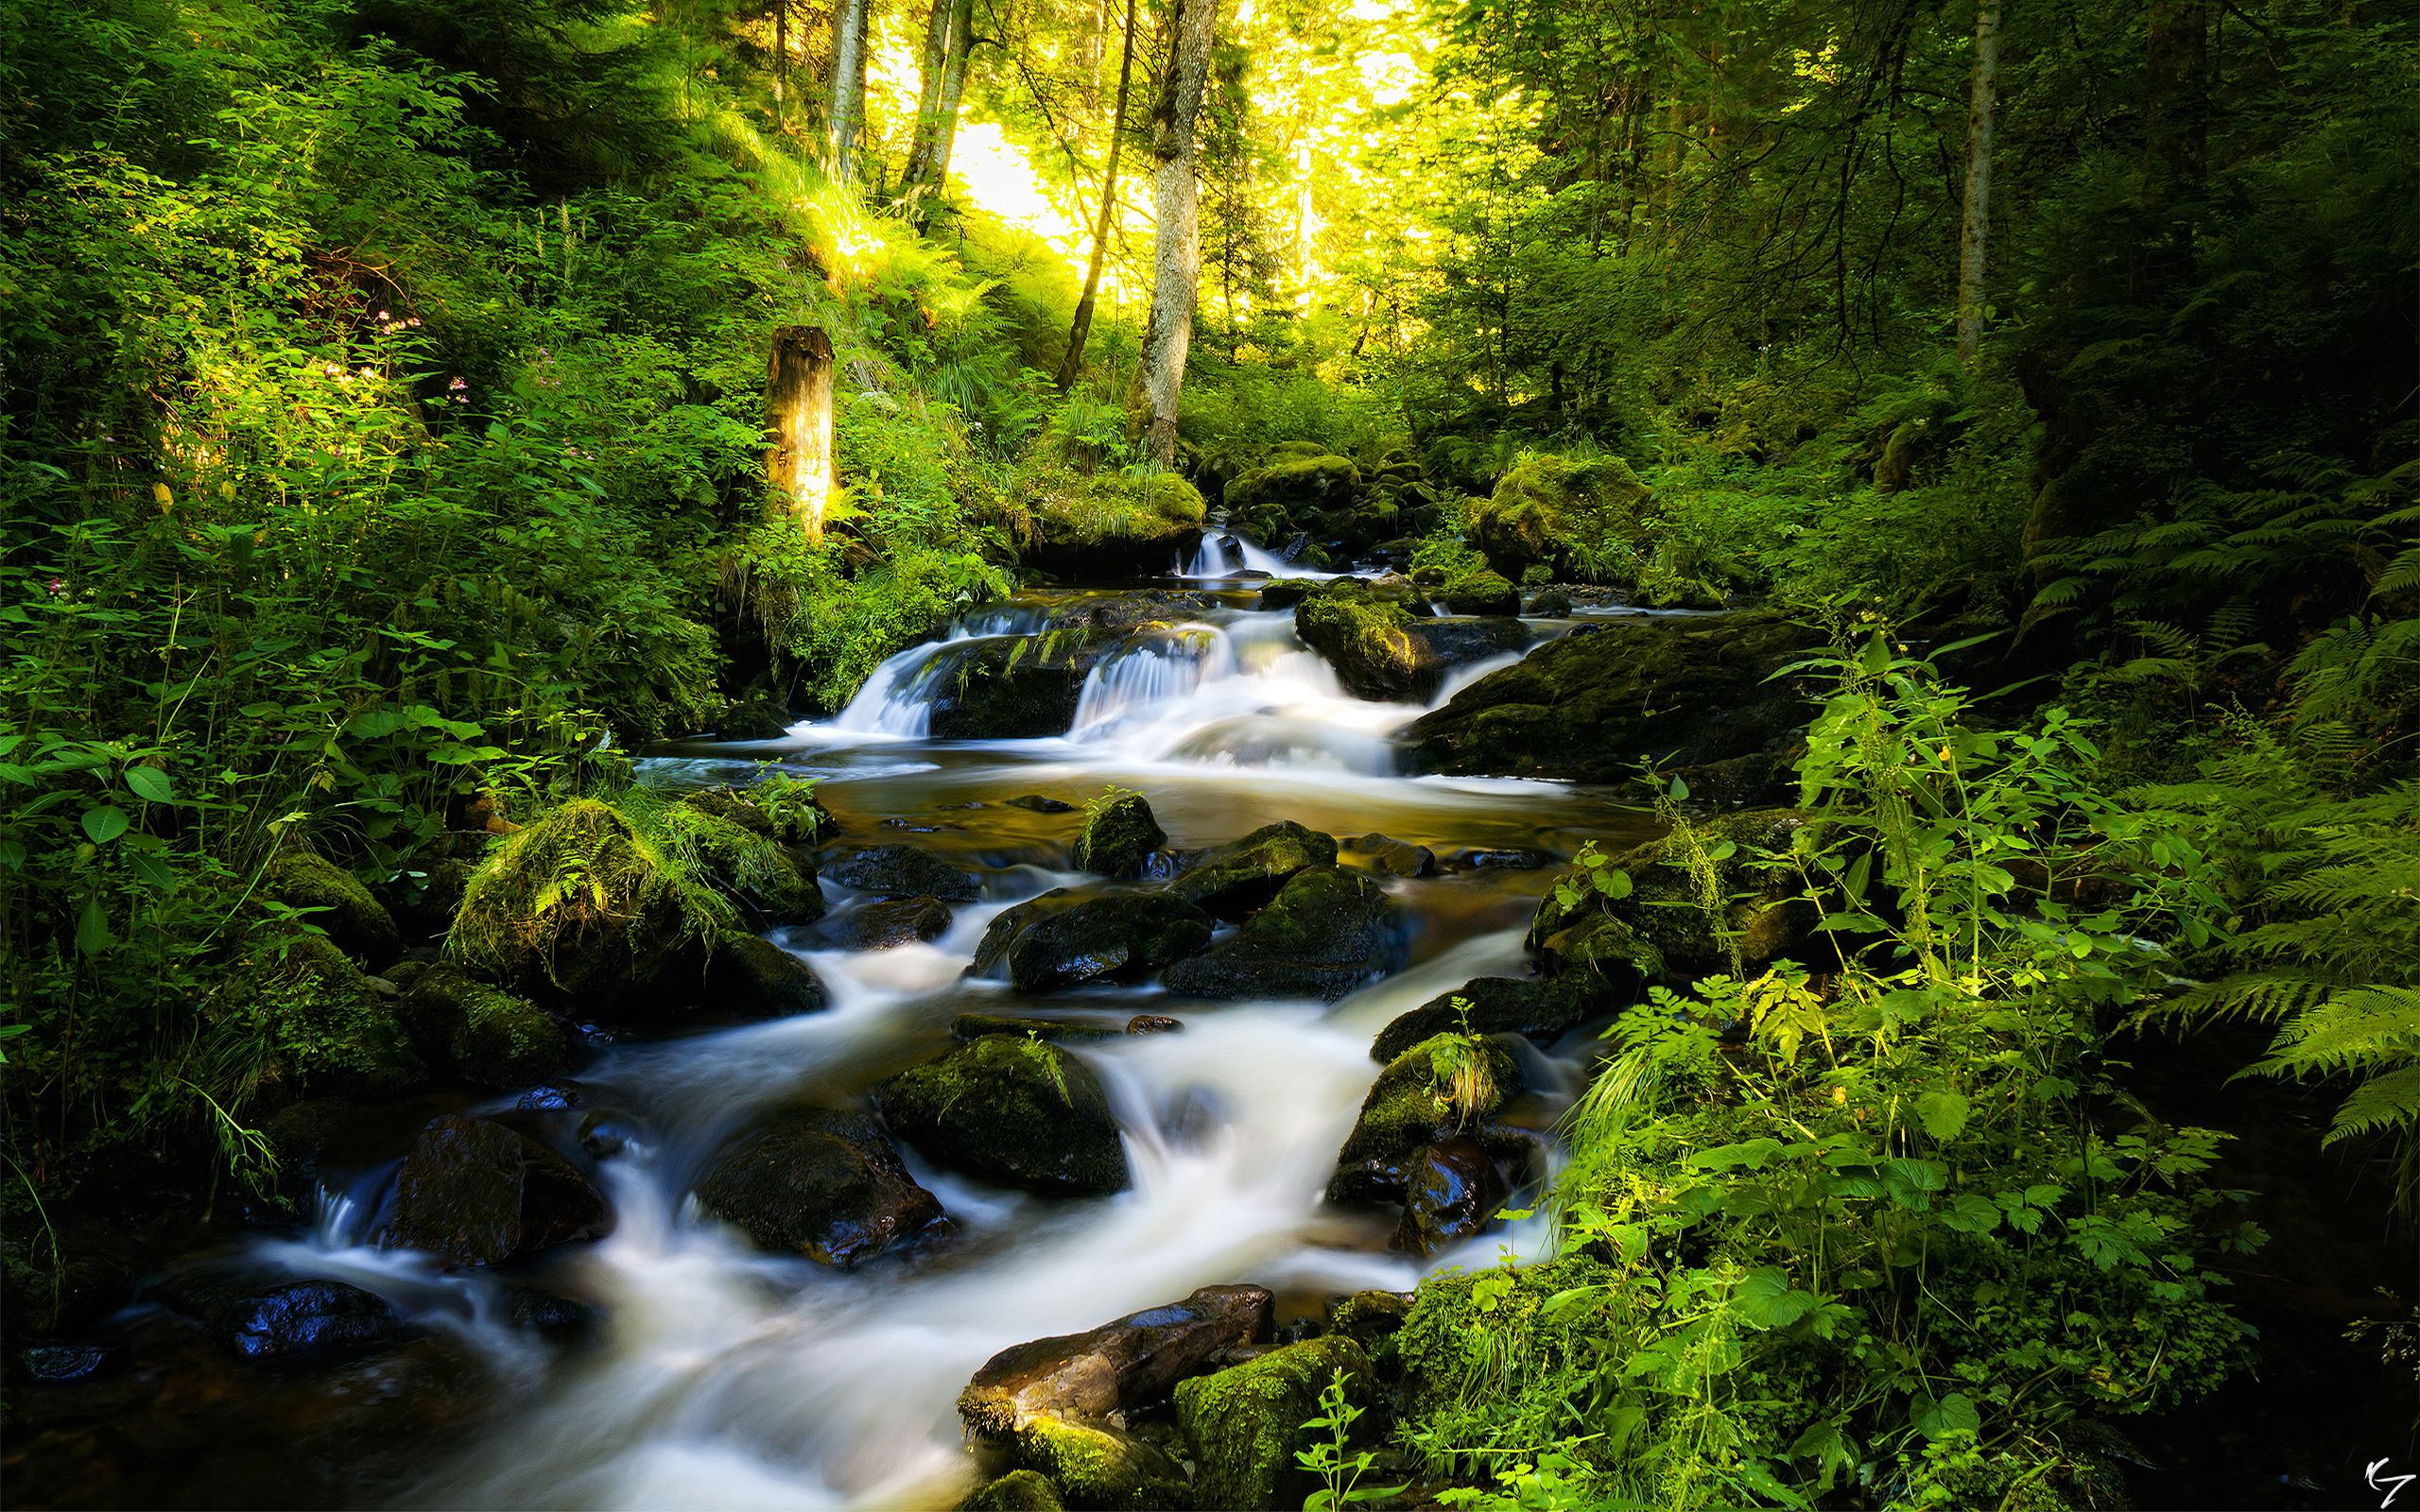 black_forest_in_germany-wide.jpg (2560×1600)